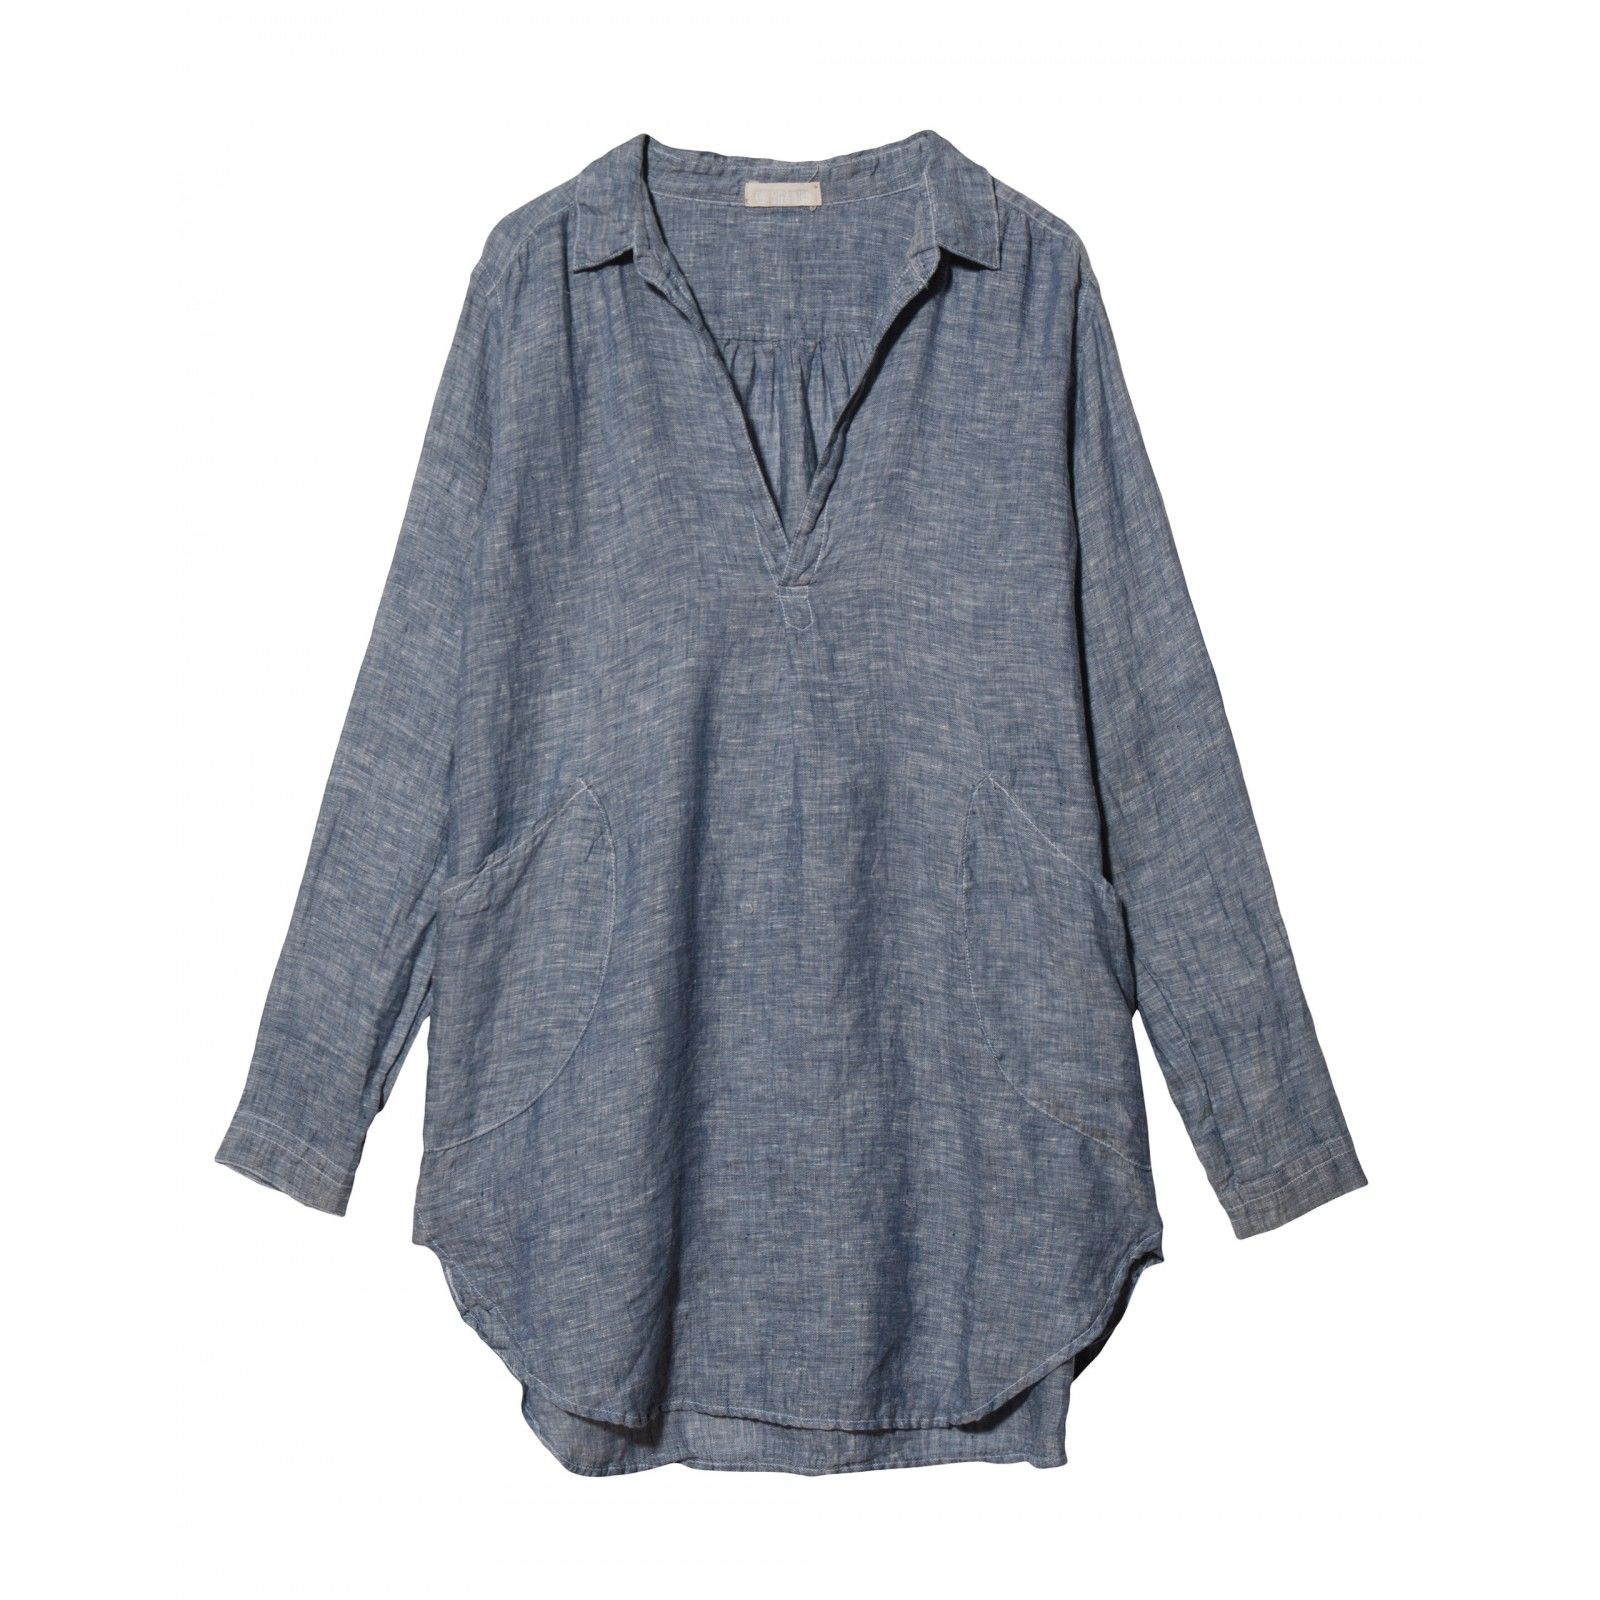 Chambray - A New Obsession by Bambino Amore - the Apron Makers